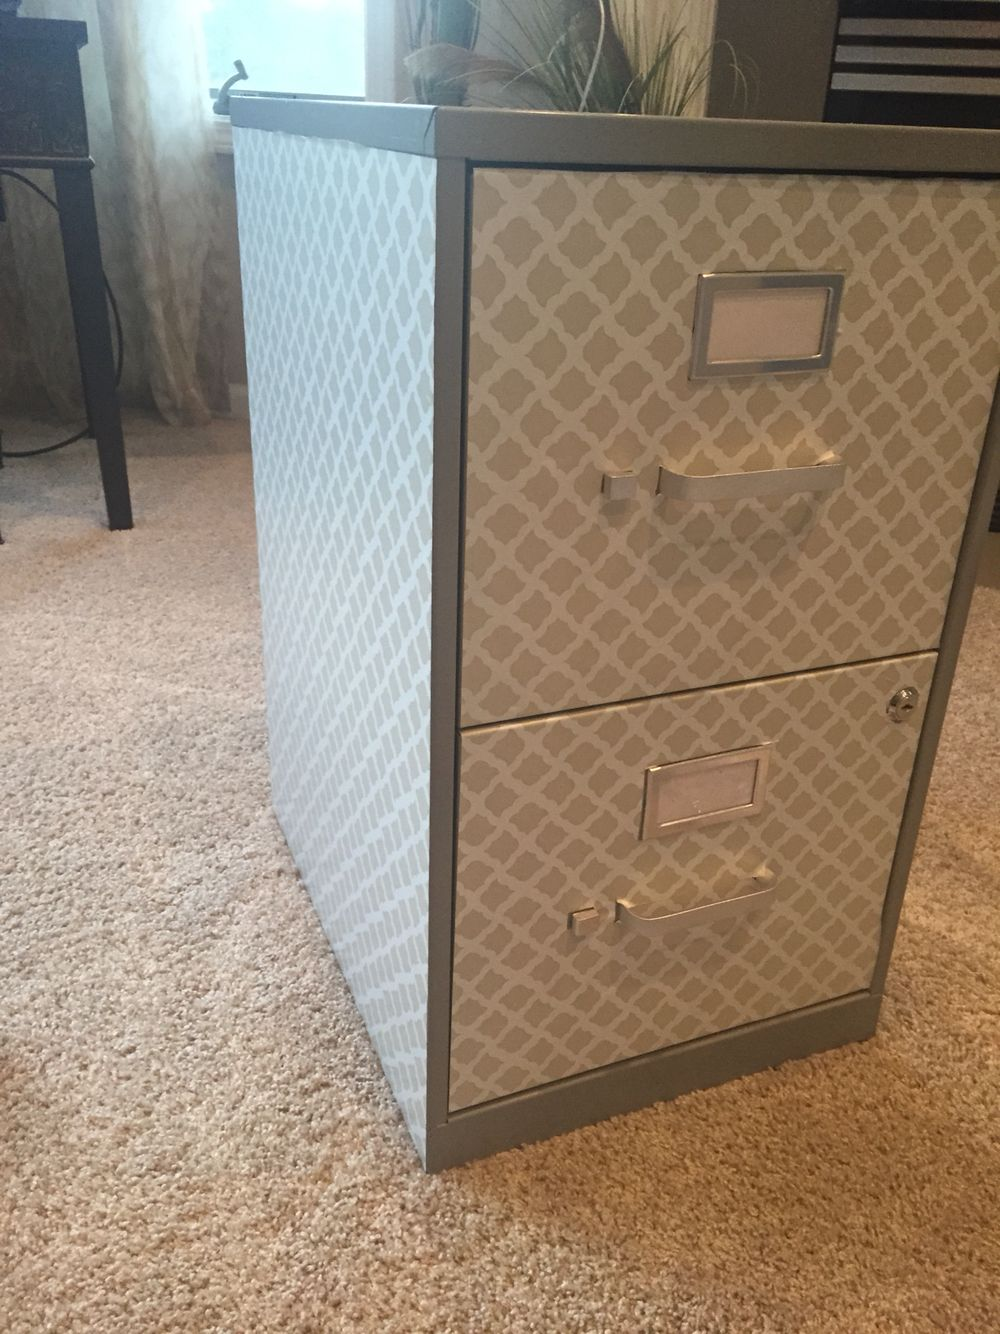 Covered A Basic Filing Cabinet With Contact Paper So Chic Filing Cabinet File Cabinet Makeover Office Makeover